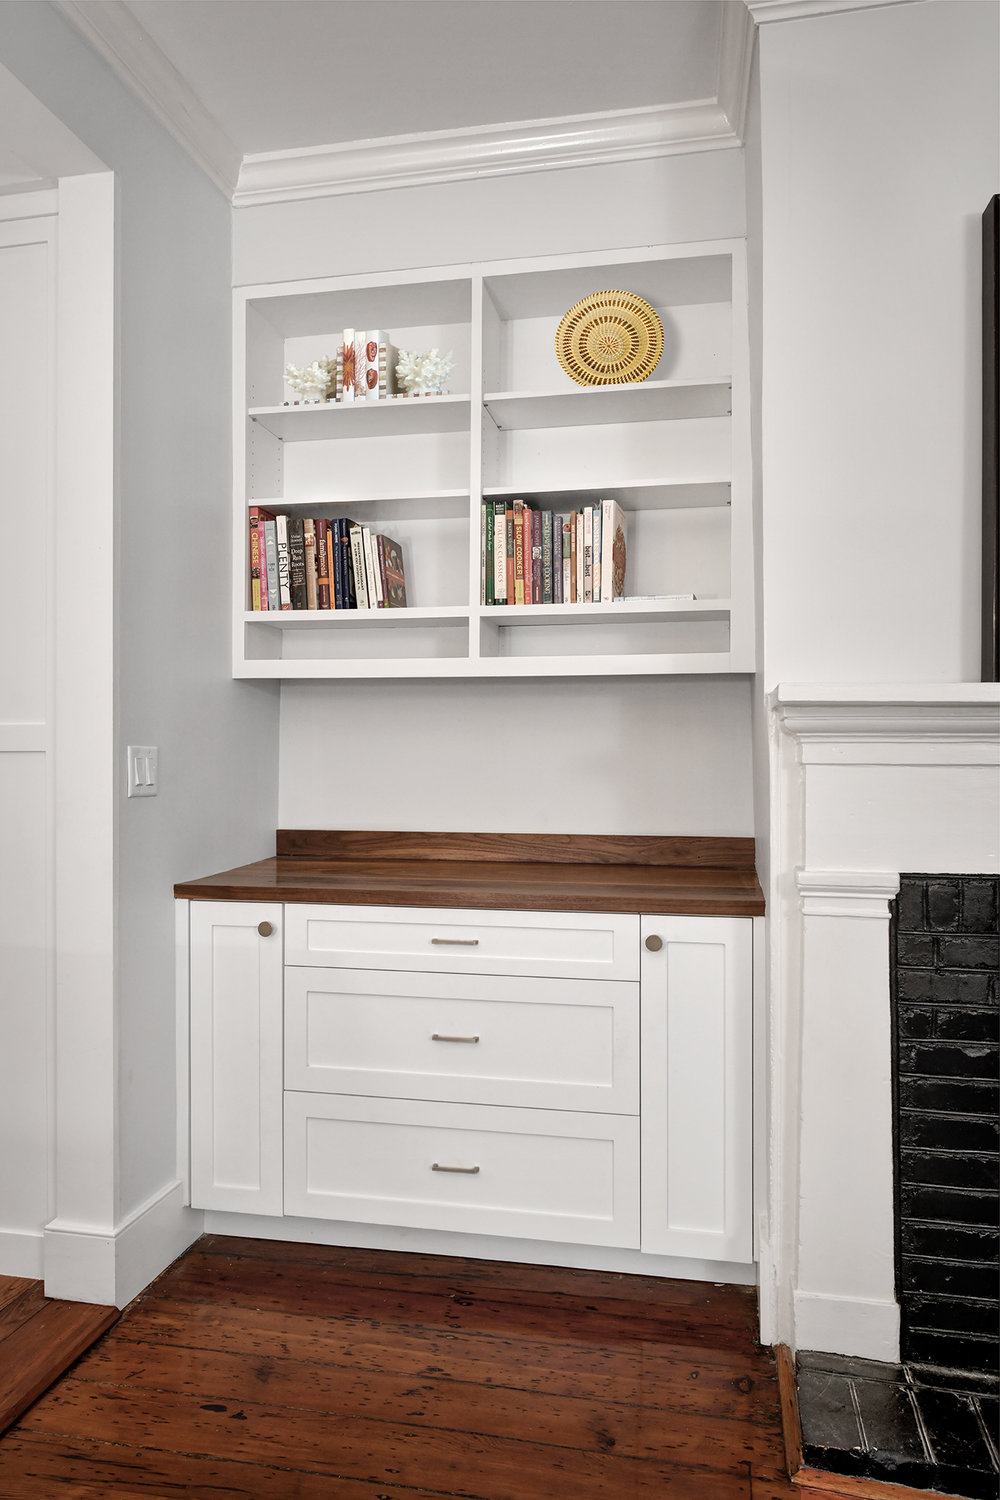 Built-in custom cabinets and shelves make the most of a small area adjacent to the fireplace.